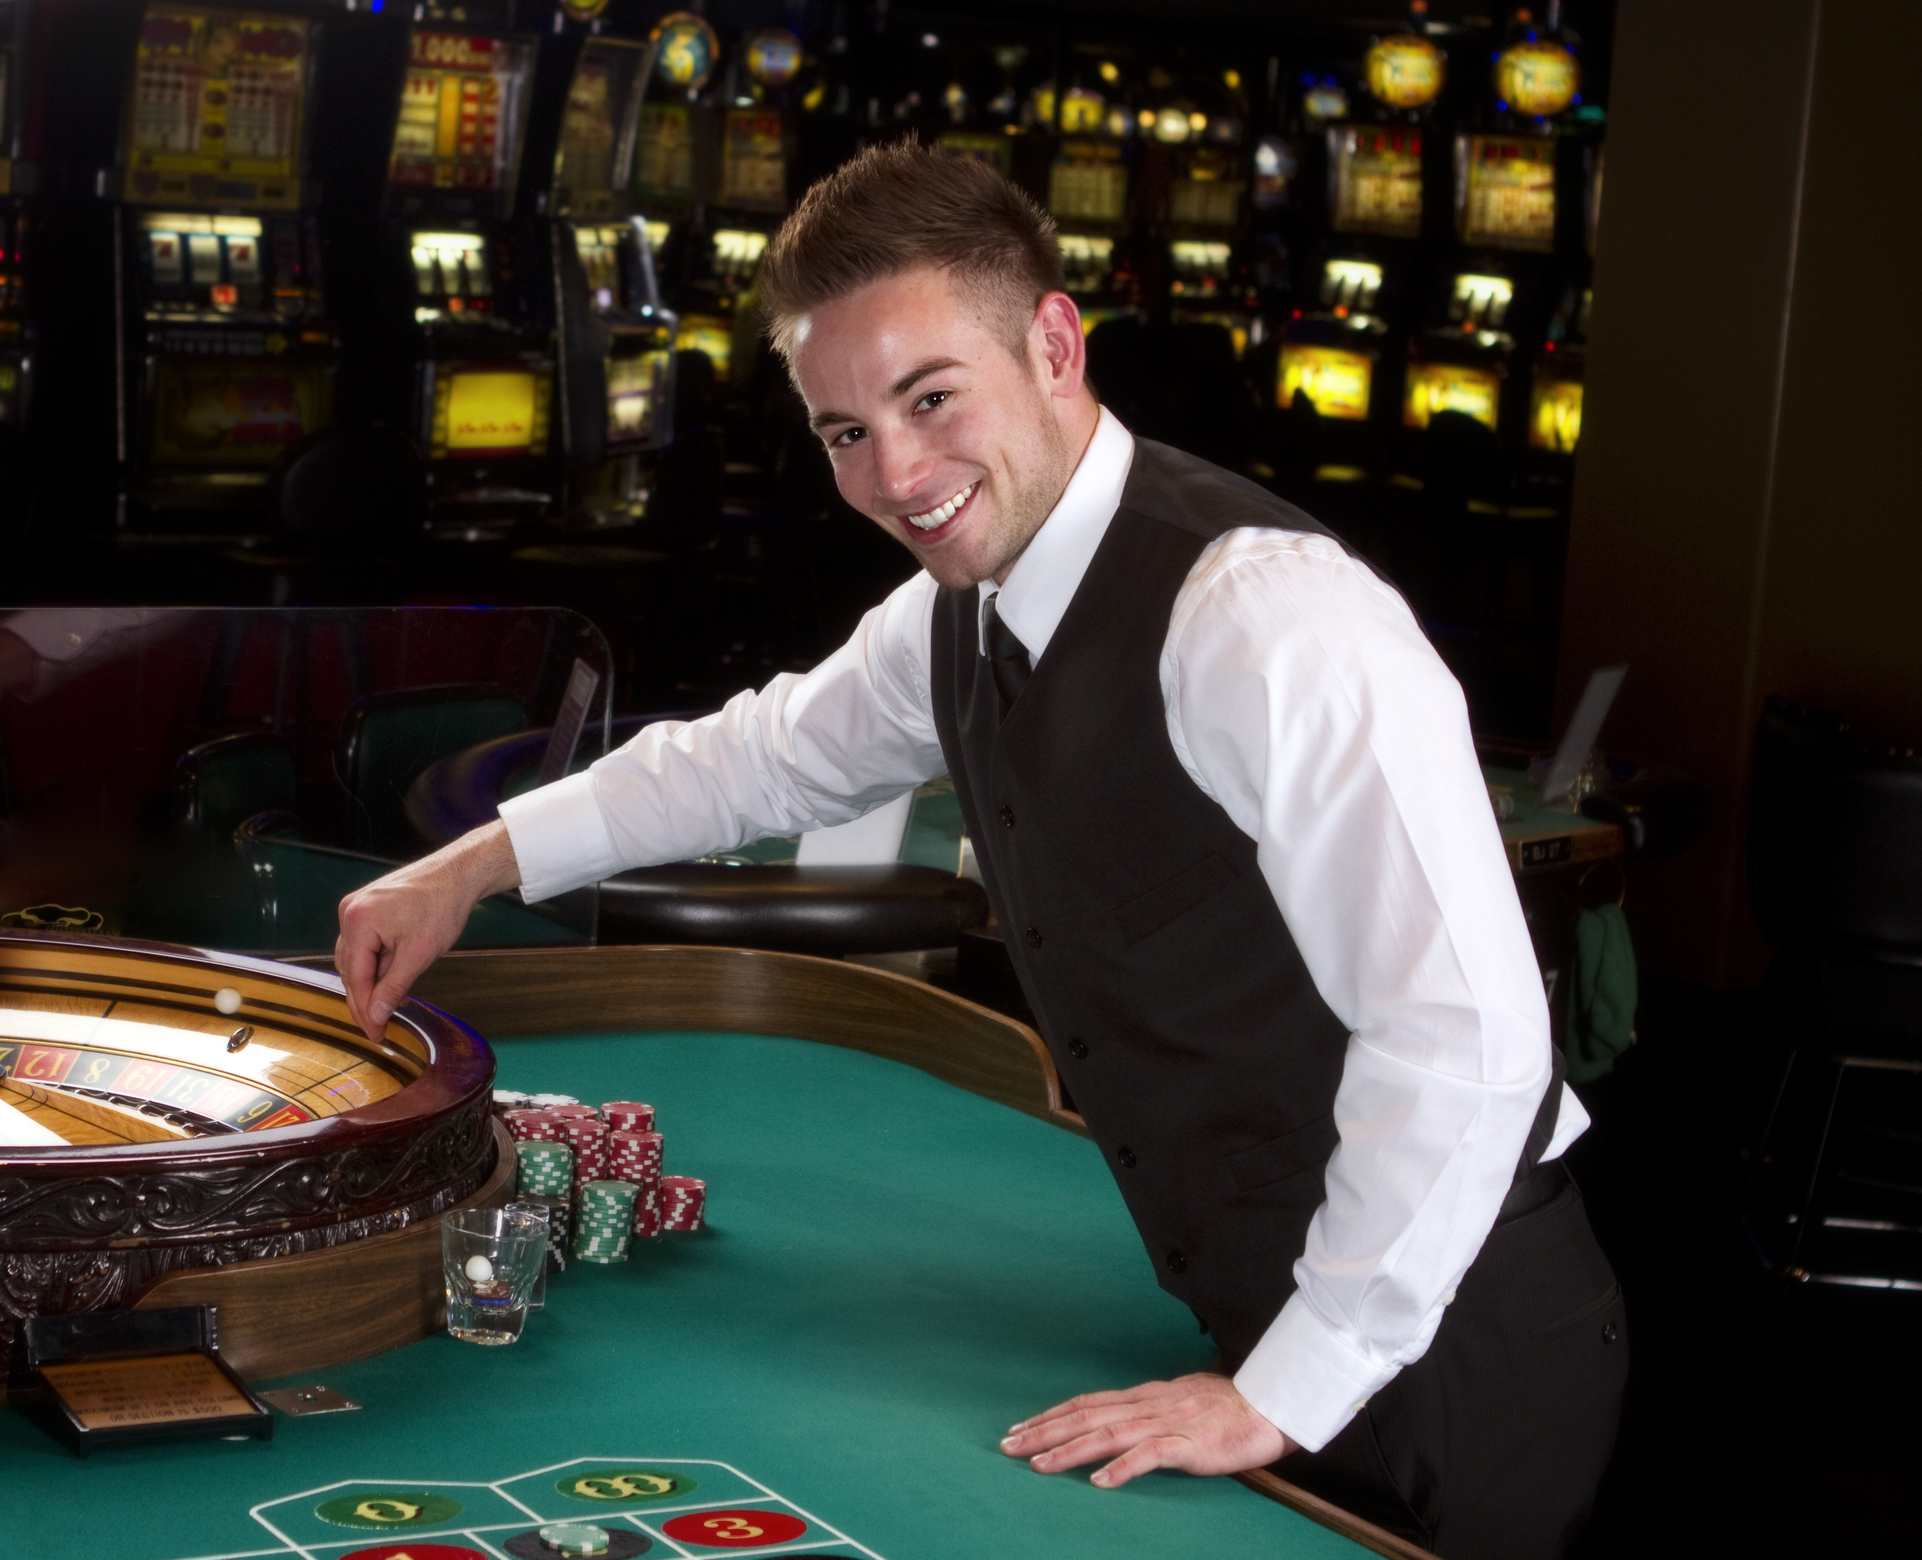 What should you know about online gambling?